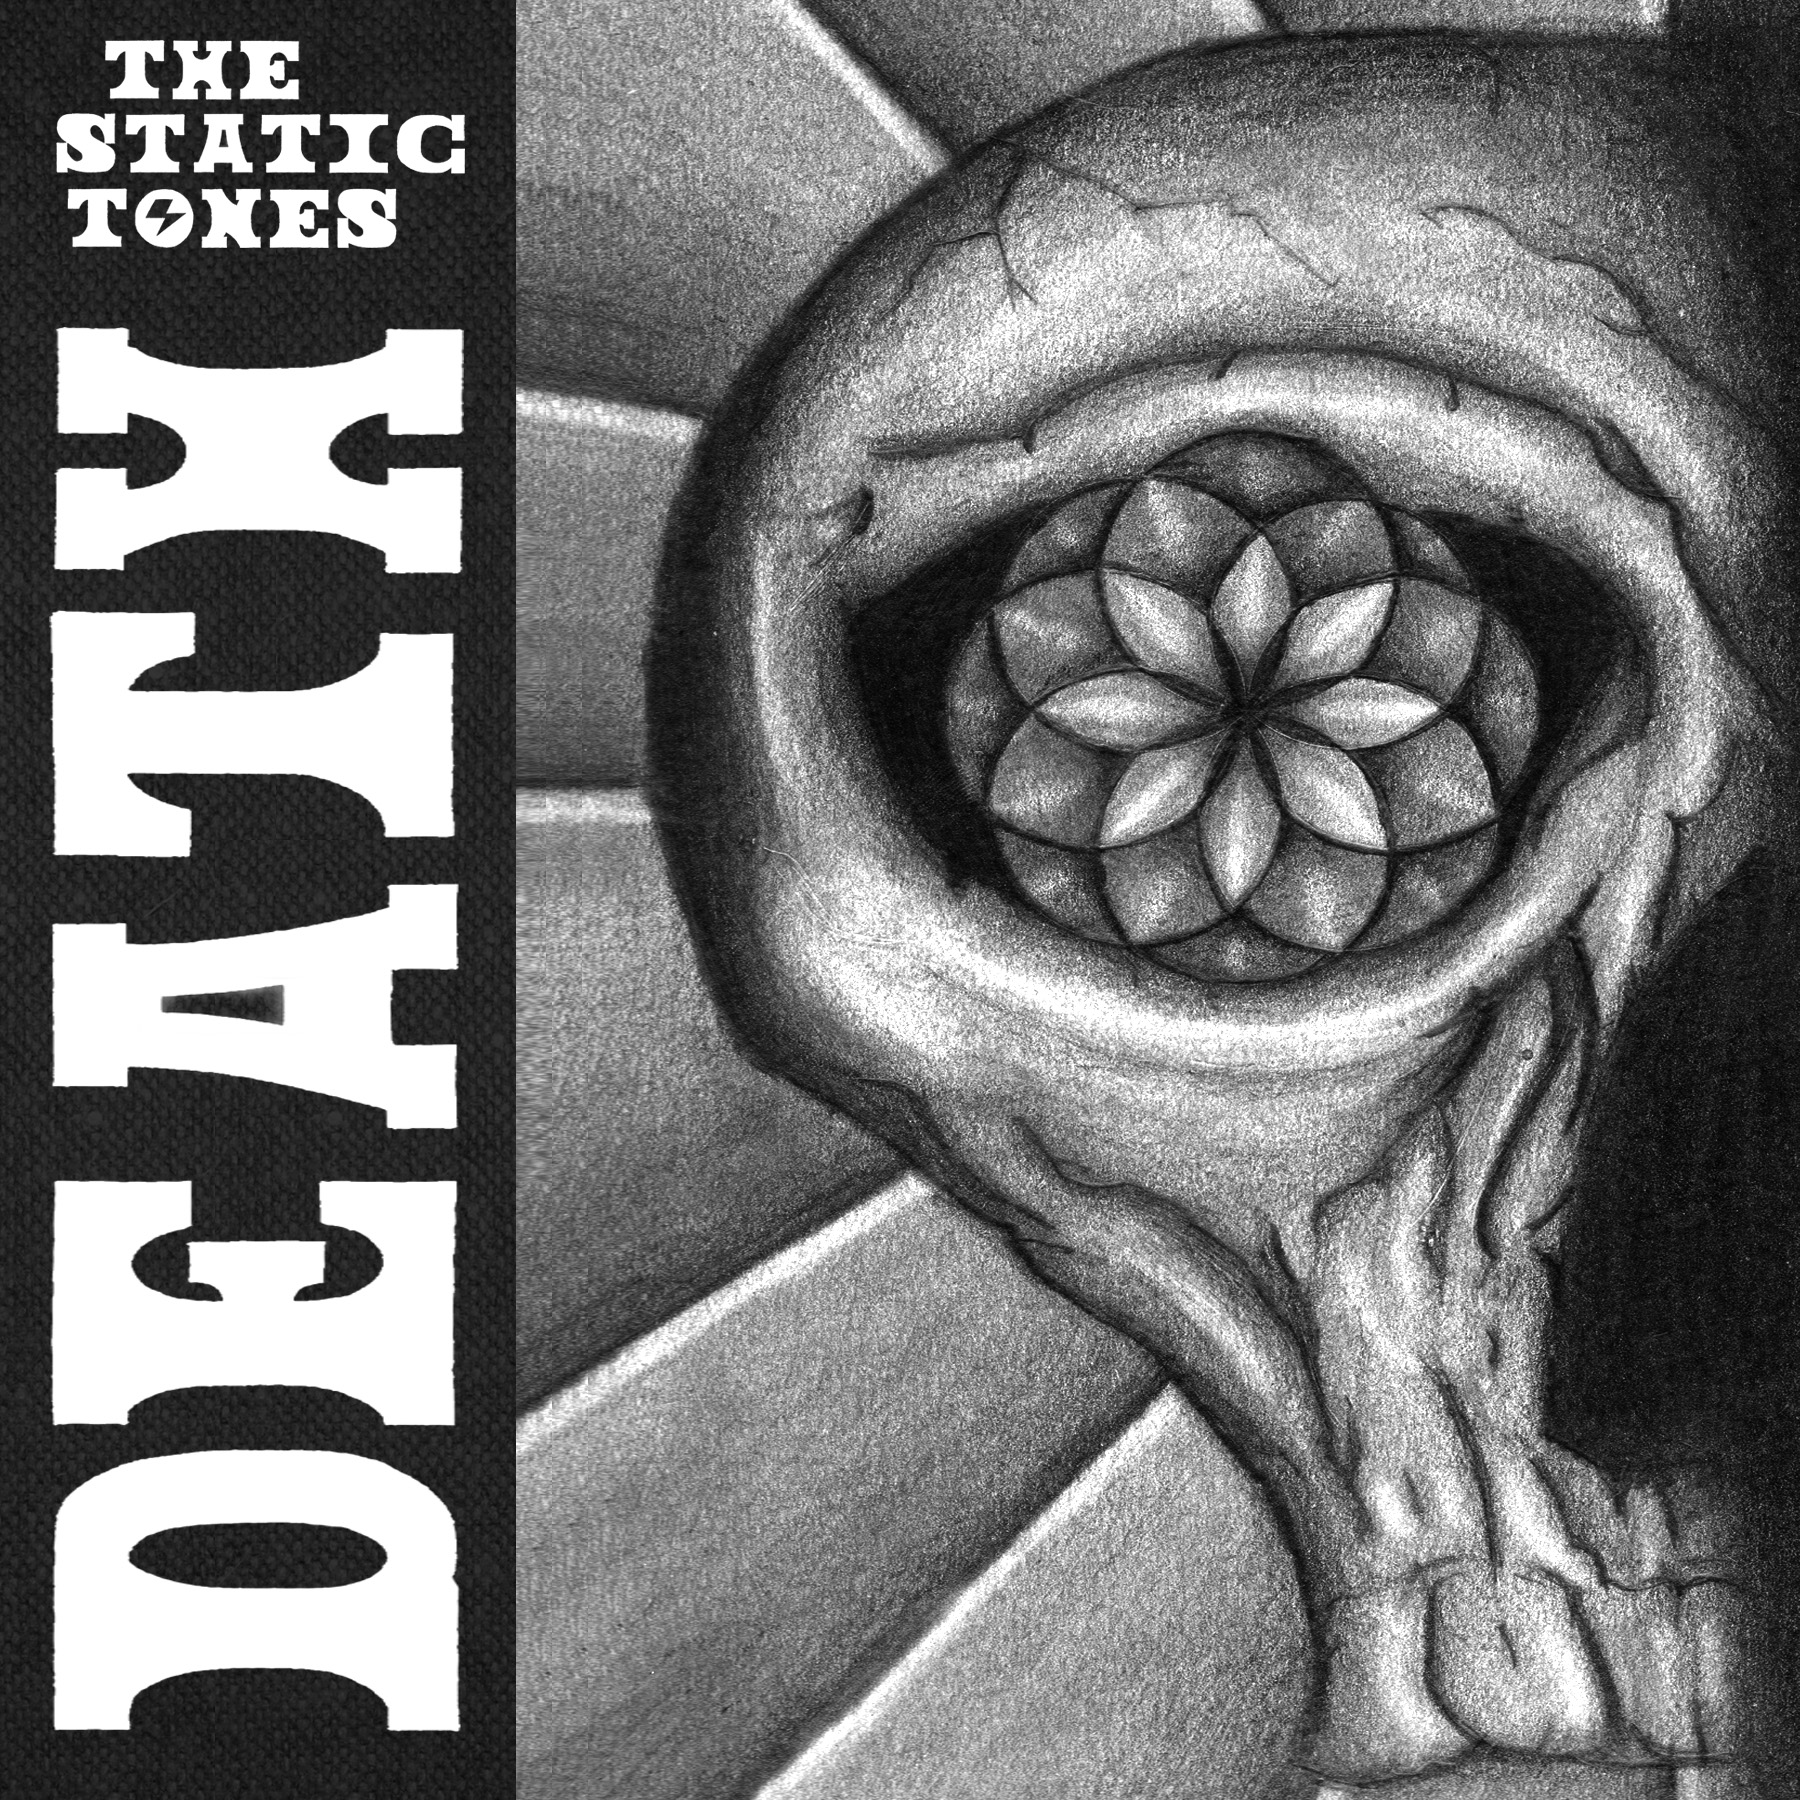 http://talk-studios.com/wp-content/uploads/2015/09/DEATH-ep-Cover.jpg